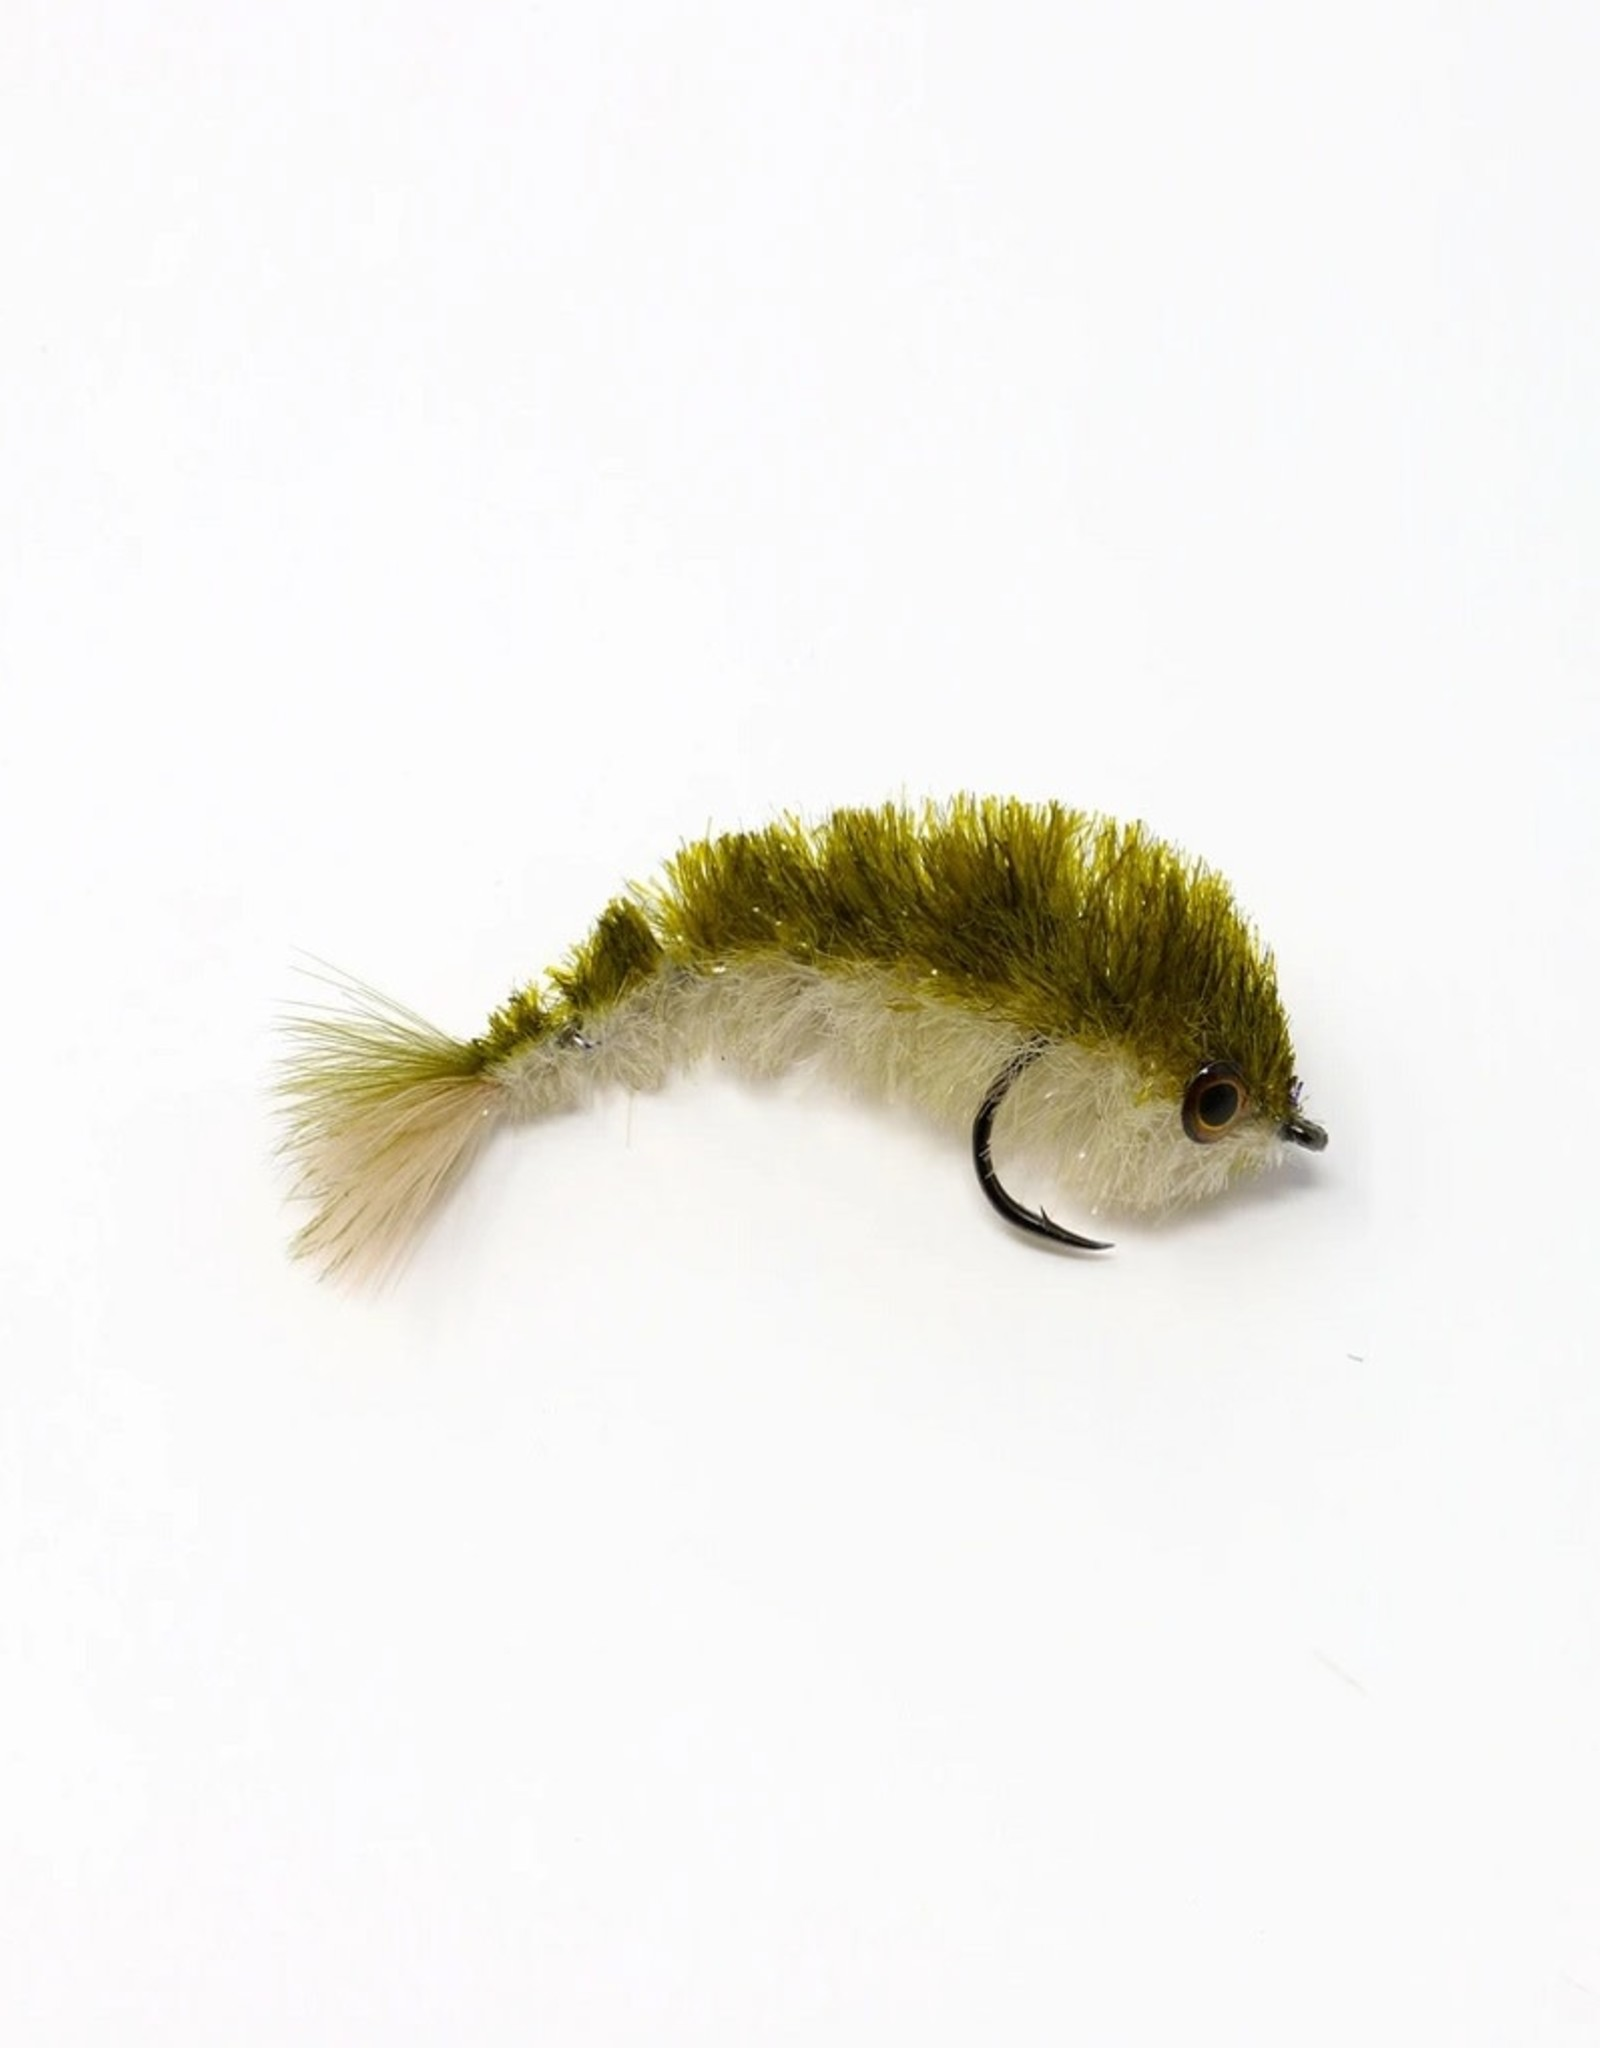 Flymen Fishing Co Chocklett's Mini Finesse Changer